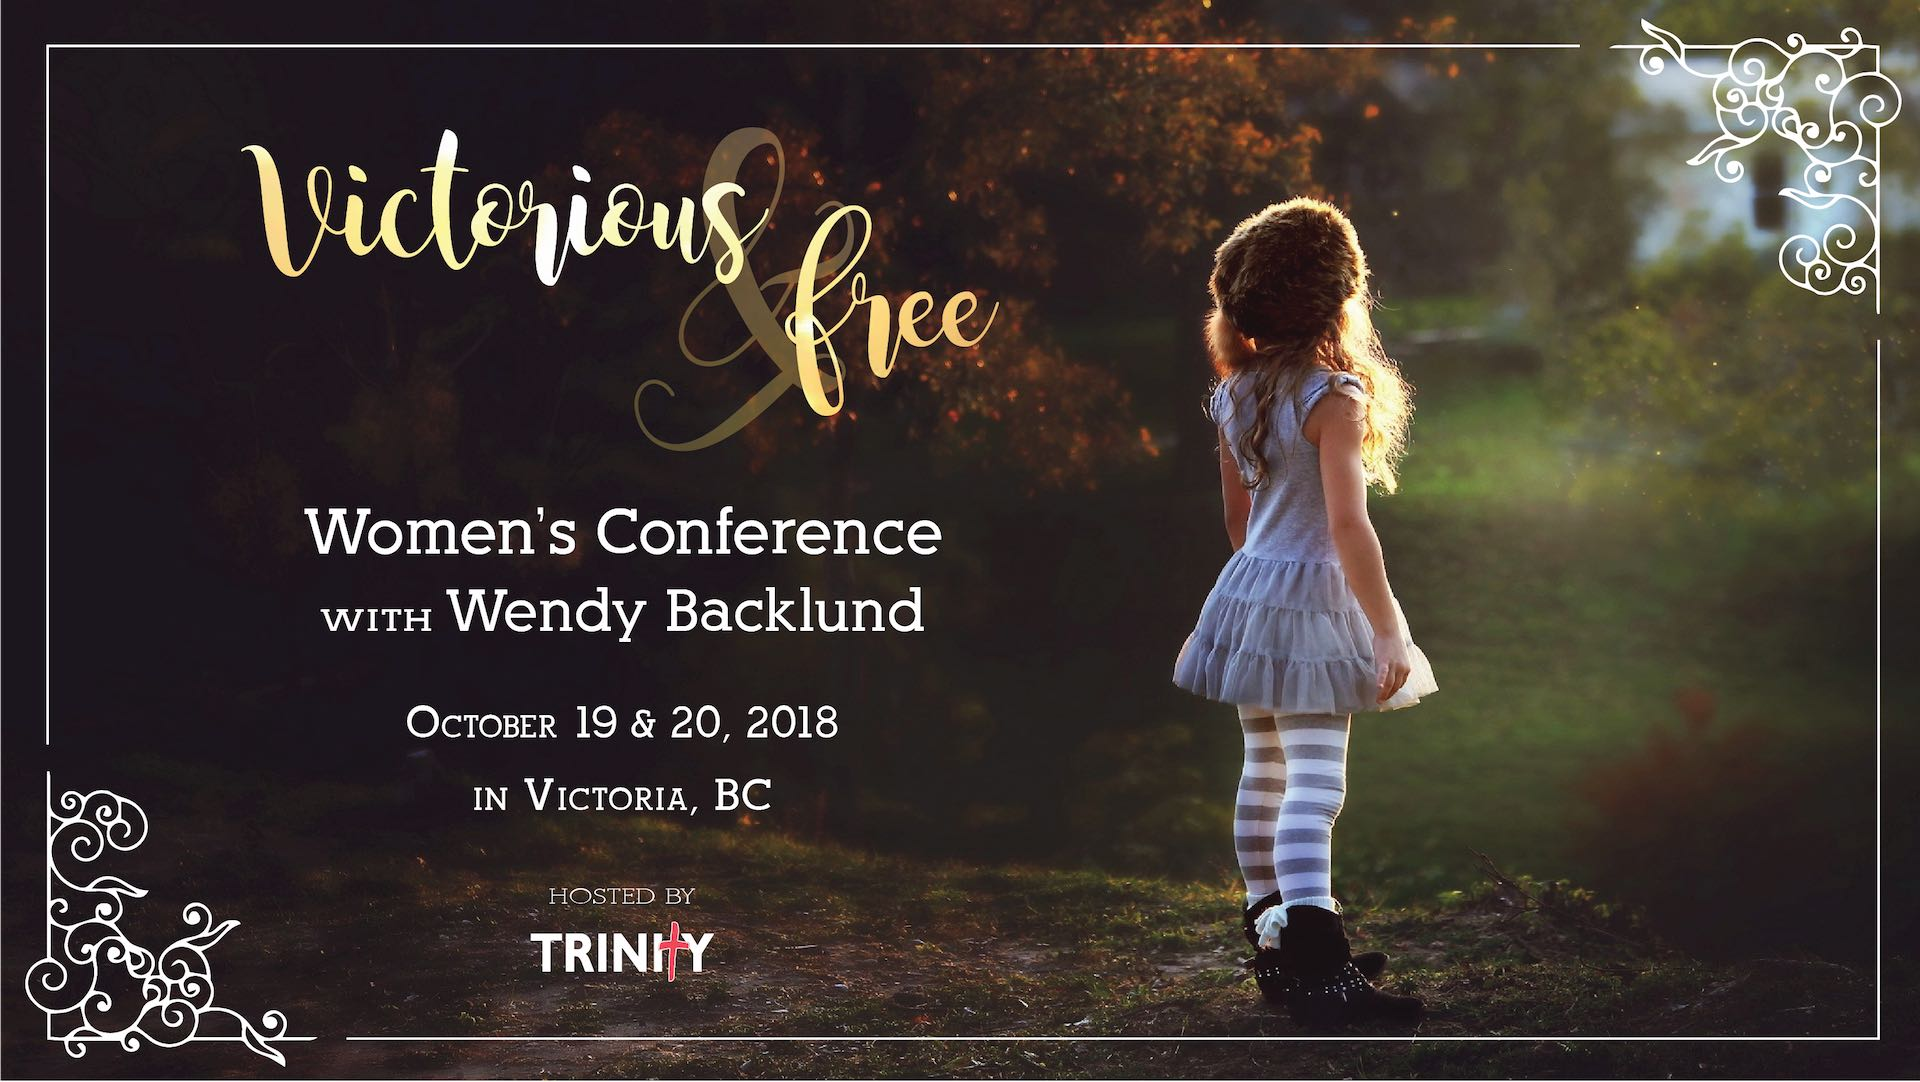 Victorious & Free Women's Conference